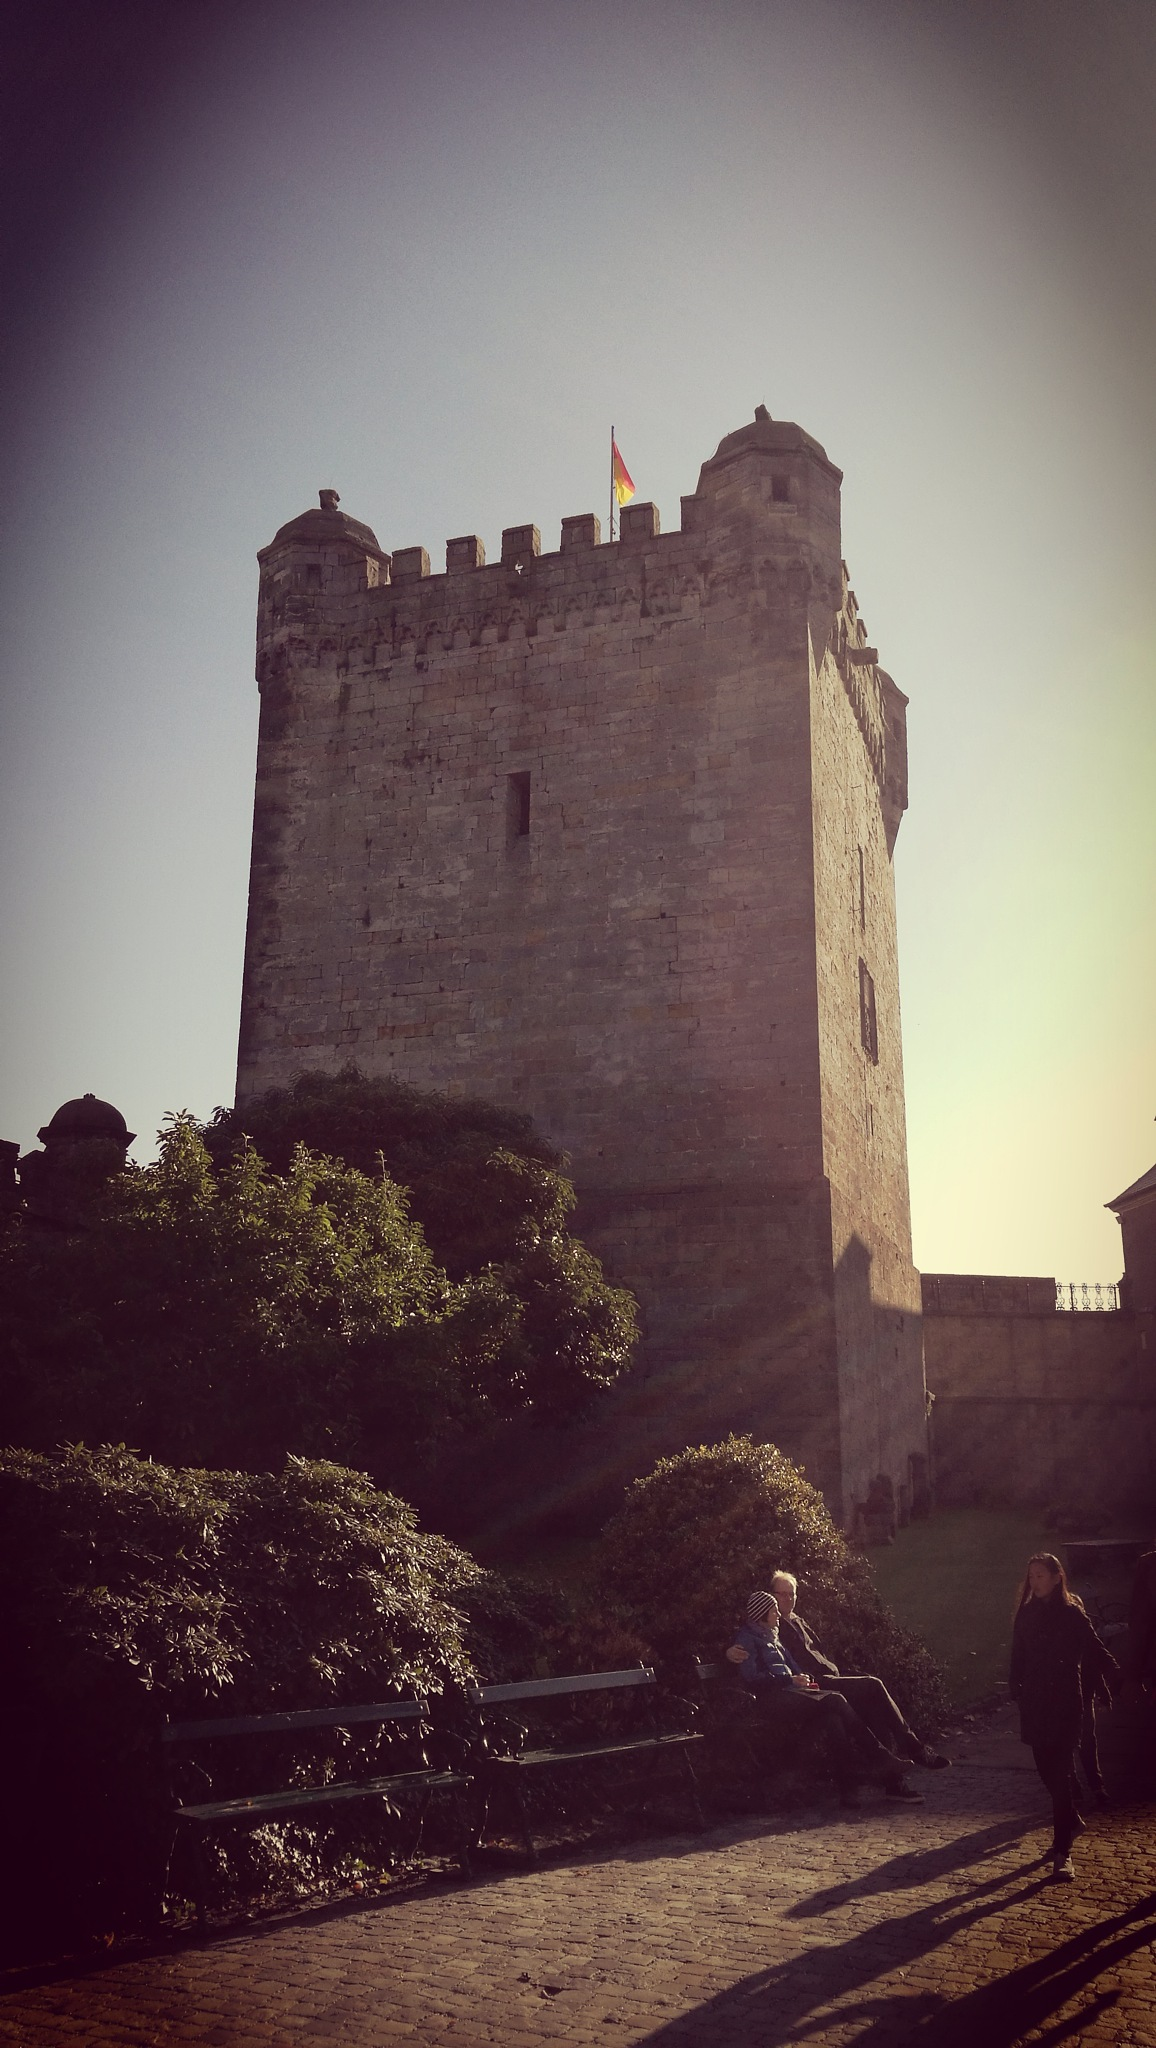 castle by edo.snippe.3